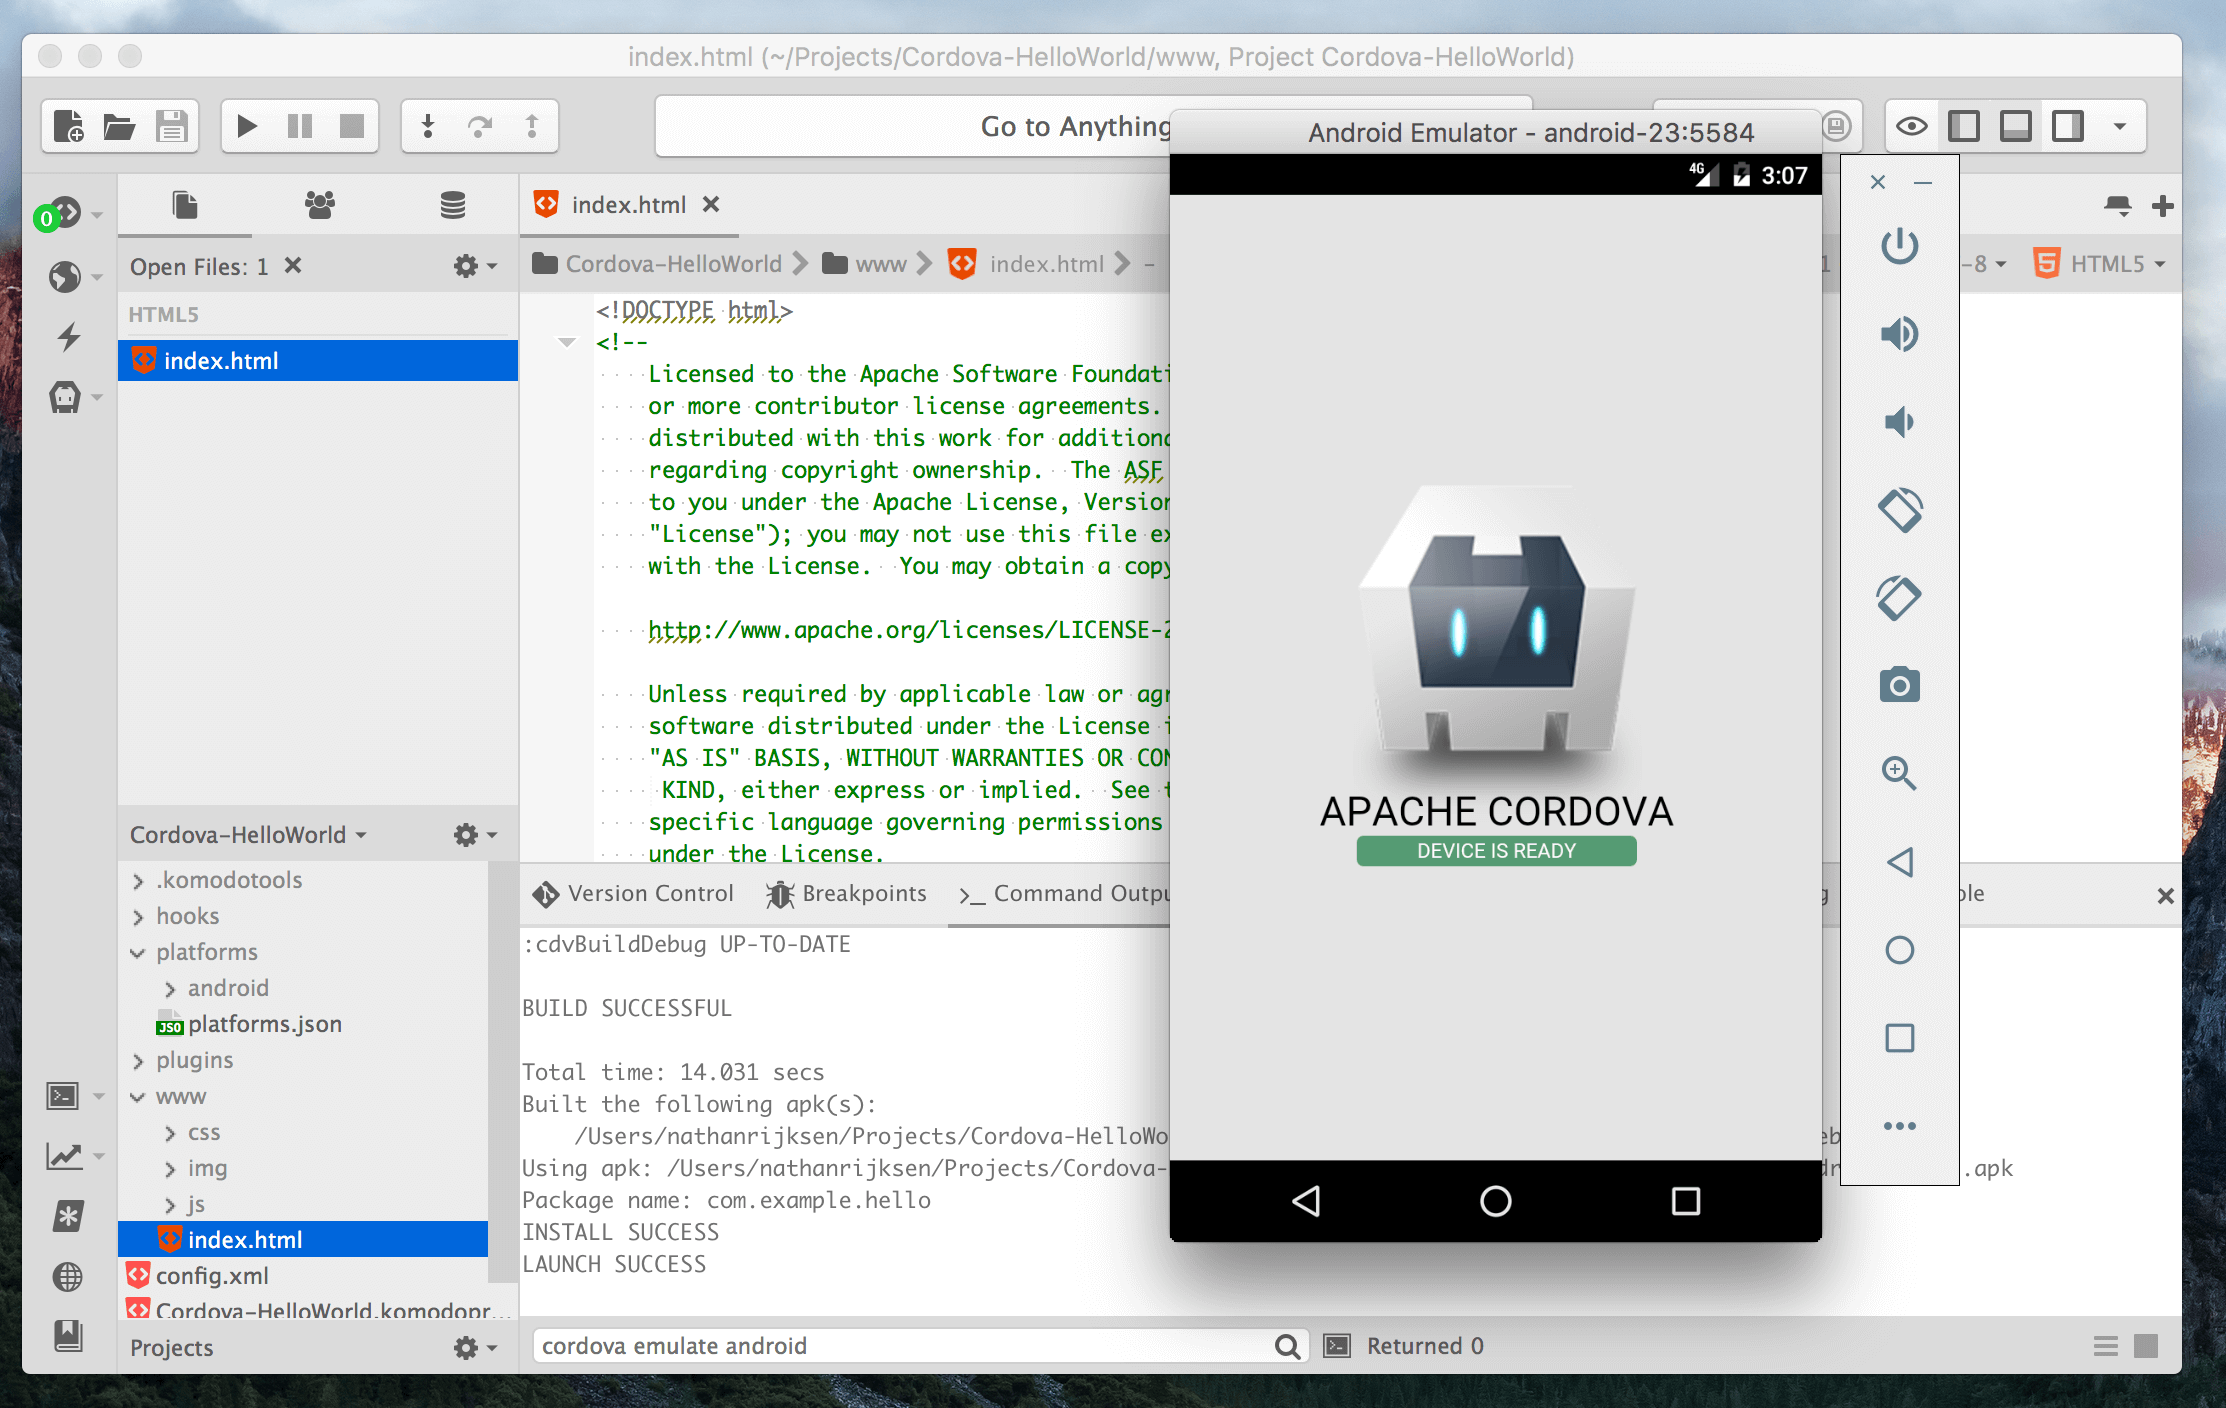 Creating Your First Android App With Cordova and Komodo IDE